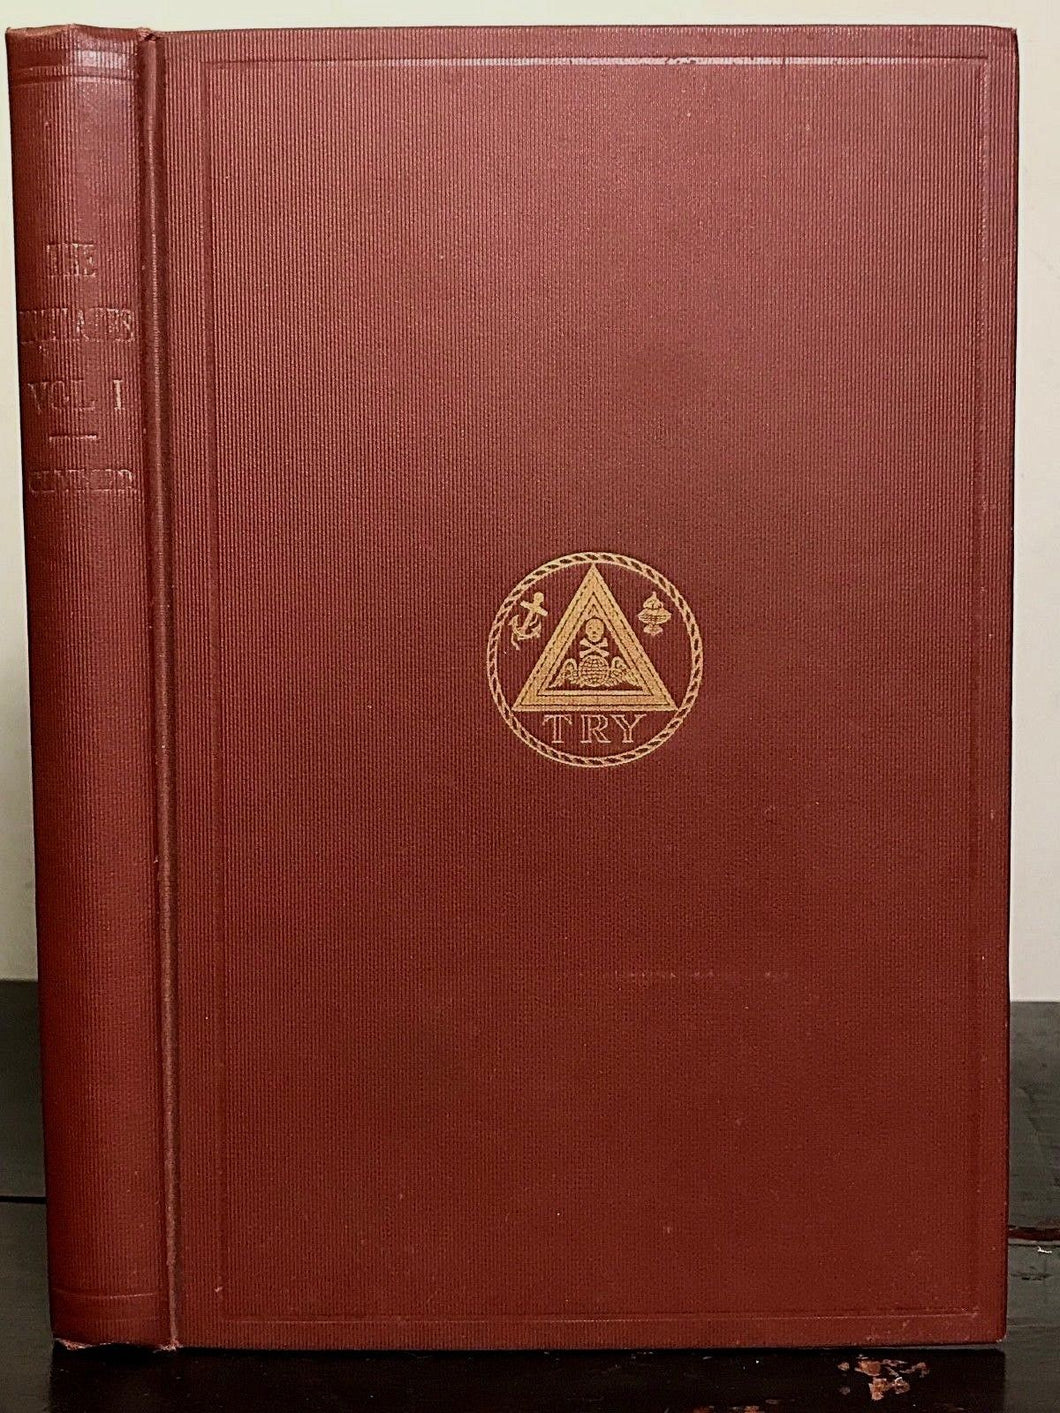 R. SWINBURNE CLYMER - THE INITIATES AND THE PEOPLE OCCULT MAGAZINE 8 Issues 1929